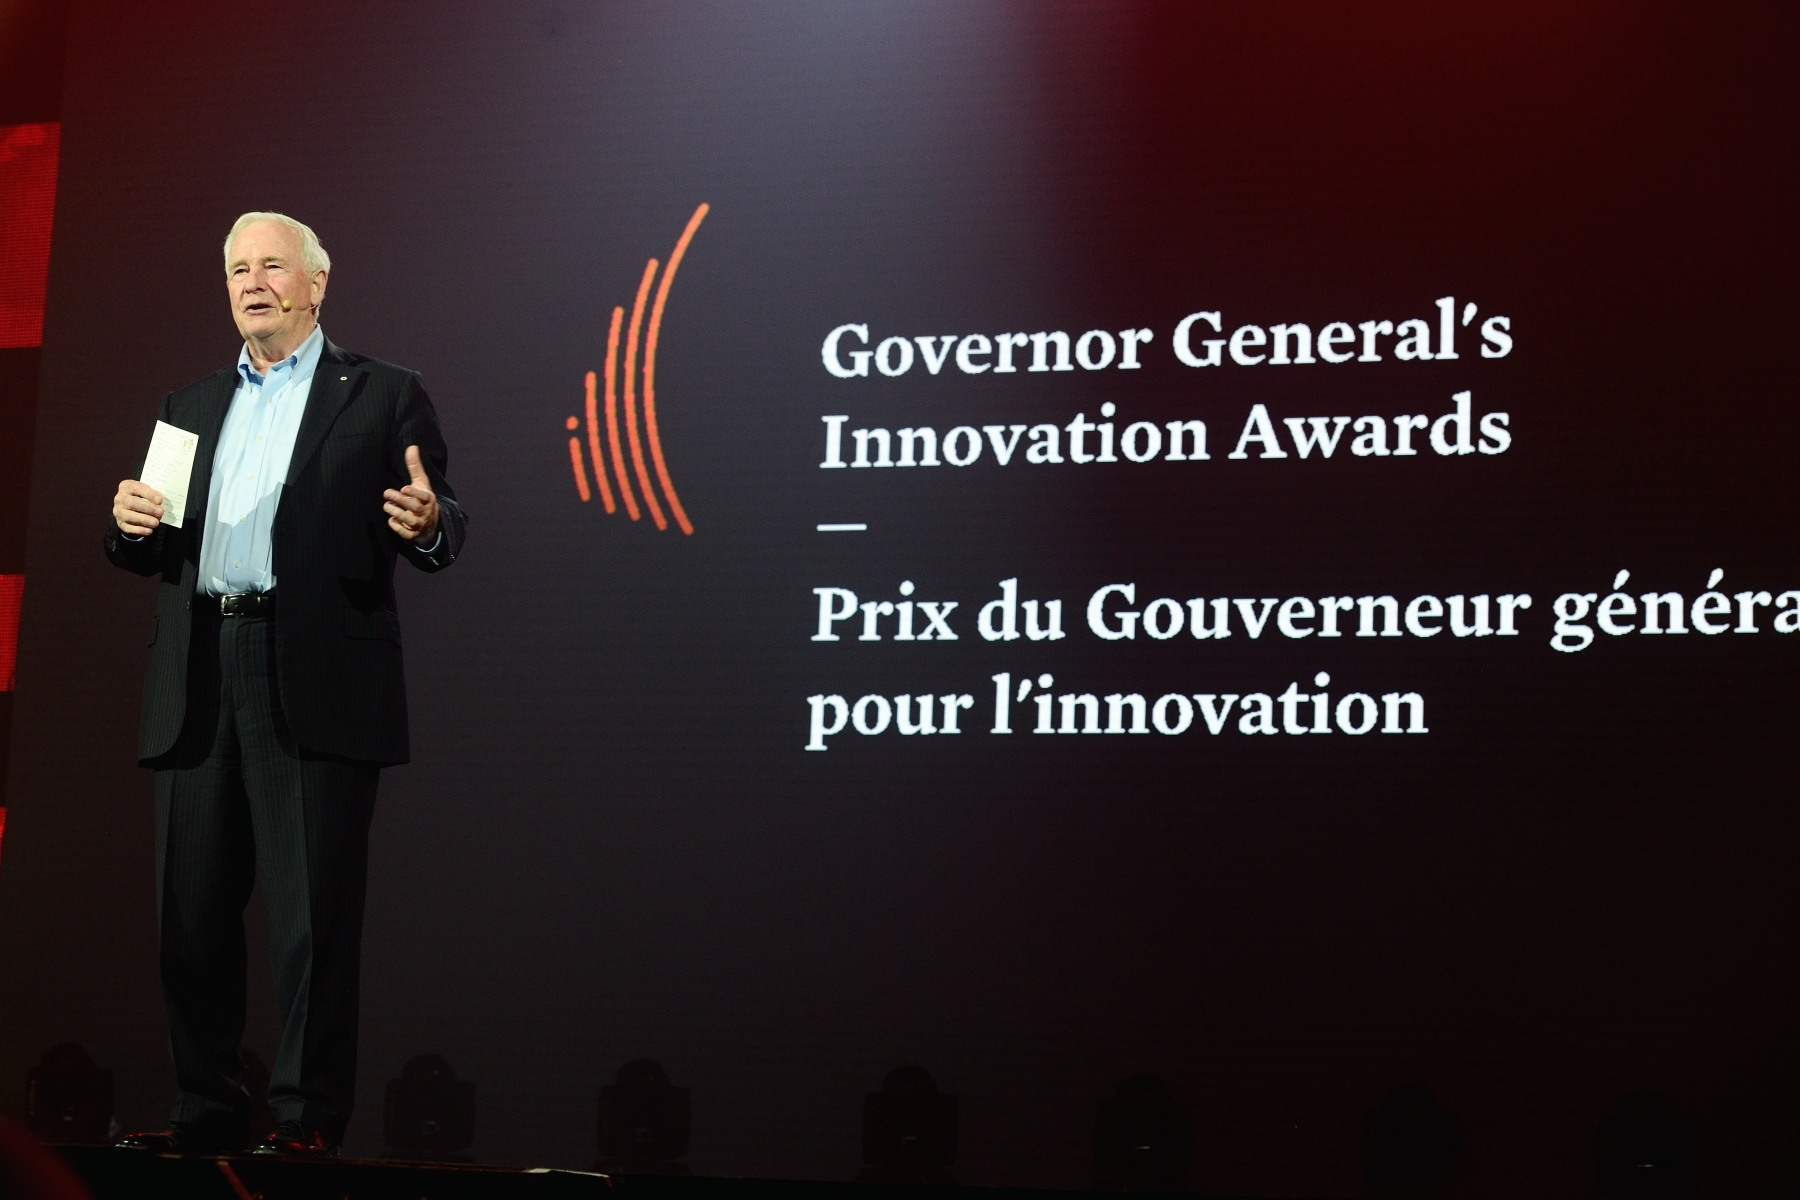 While on stage, His Excellency also had the opportunity to talk about the inaugural presentation of the Governor General's Innovation Awards that took place at Rideau Hall on May 19.